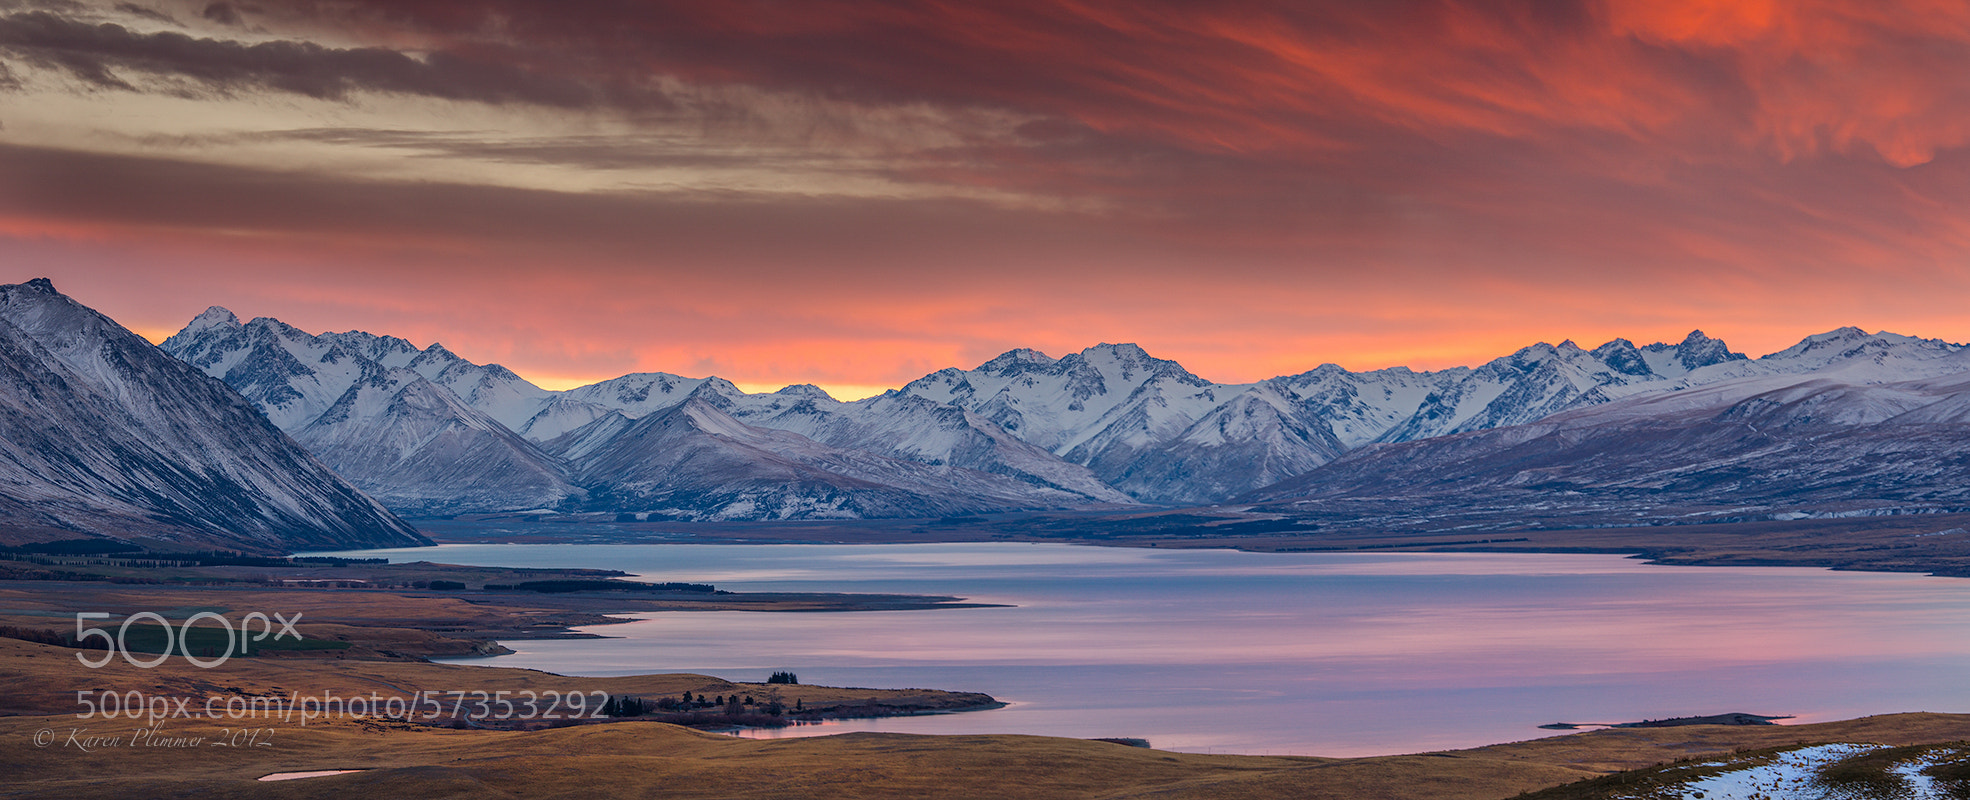 Photograph Lake Tekapo by Karen Plimmer on 500px